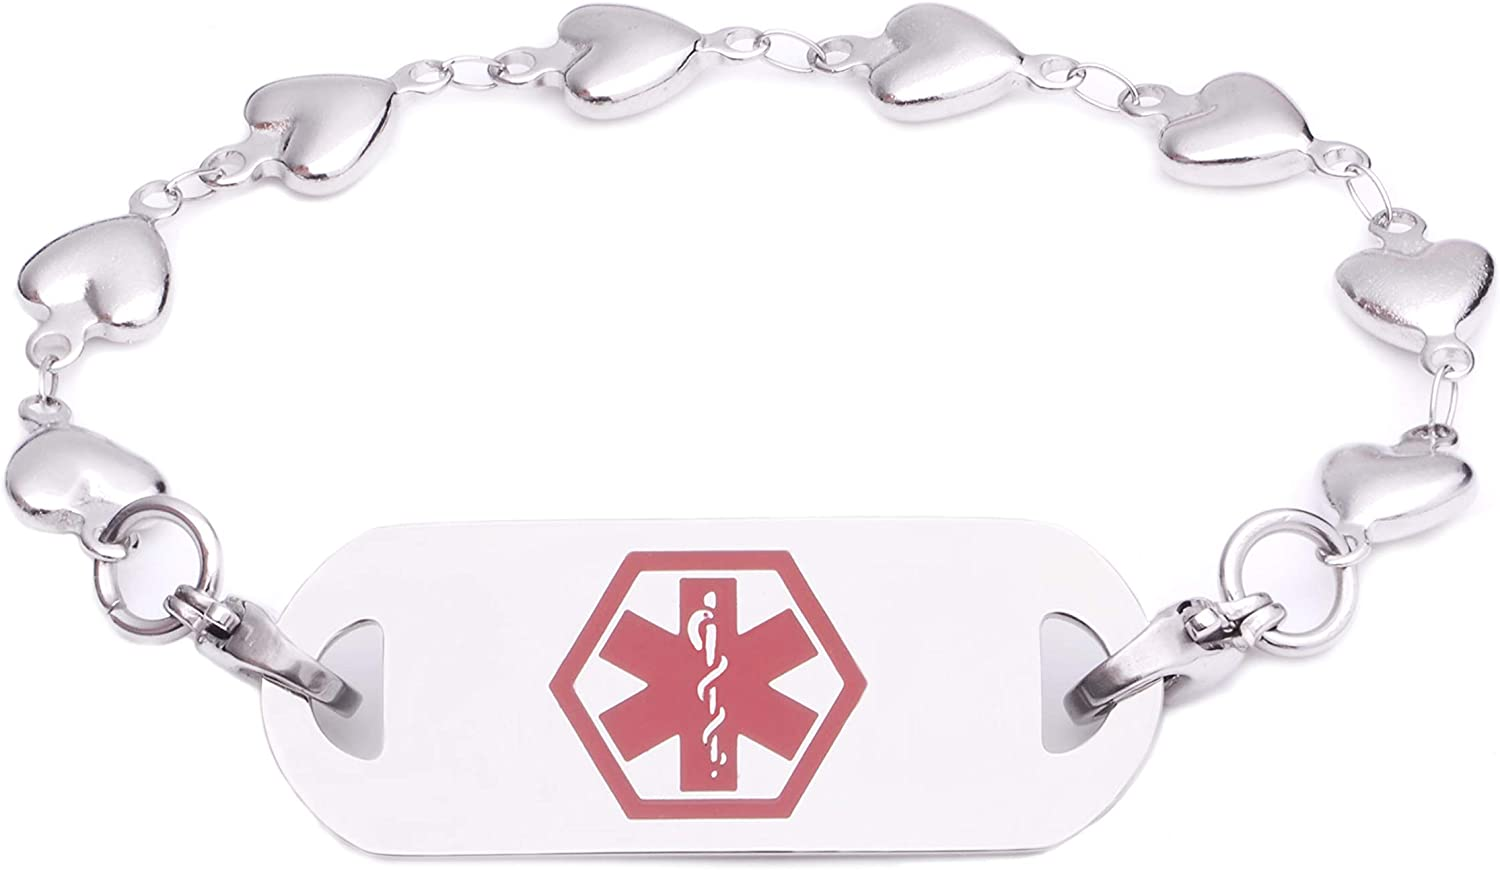 Many Pre-Engraved Conditions Medical ID Stainless Puffy Heart Link Bracelet with Tag